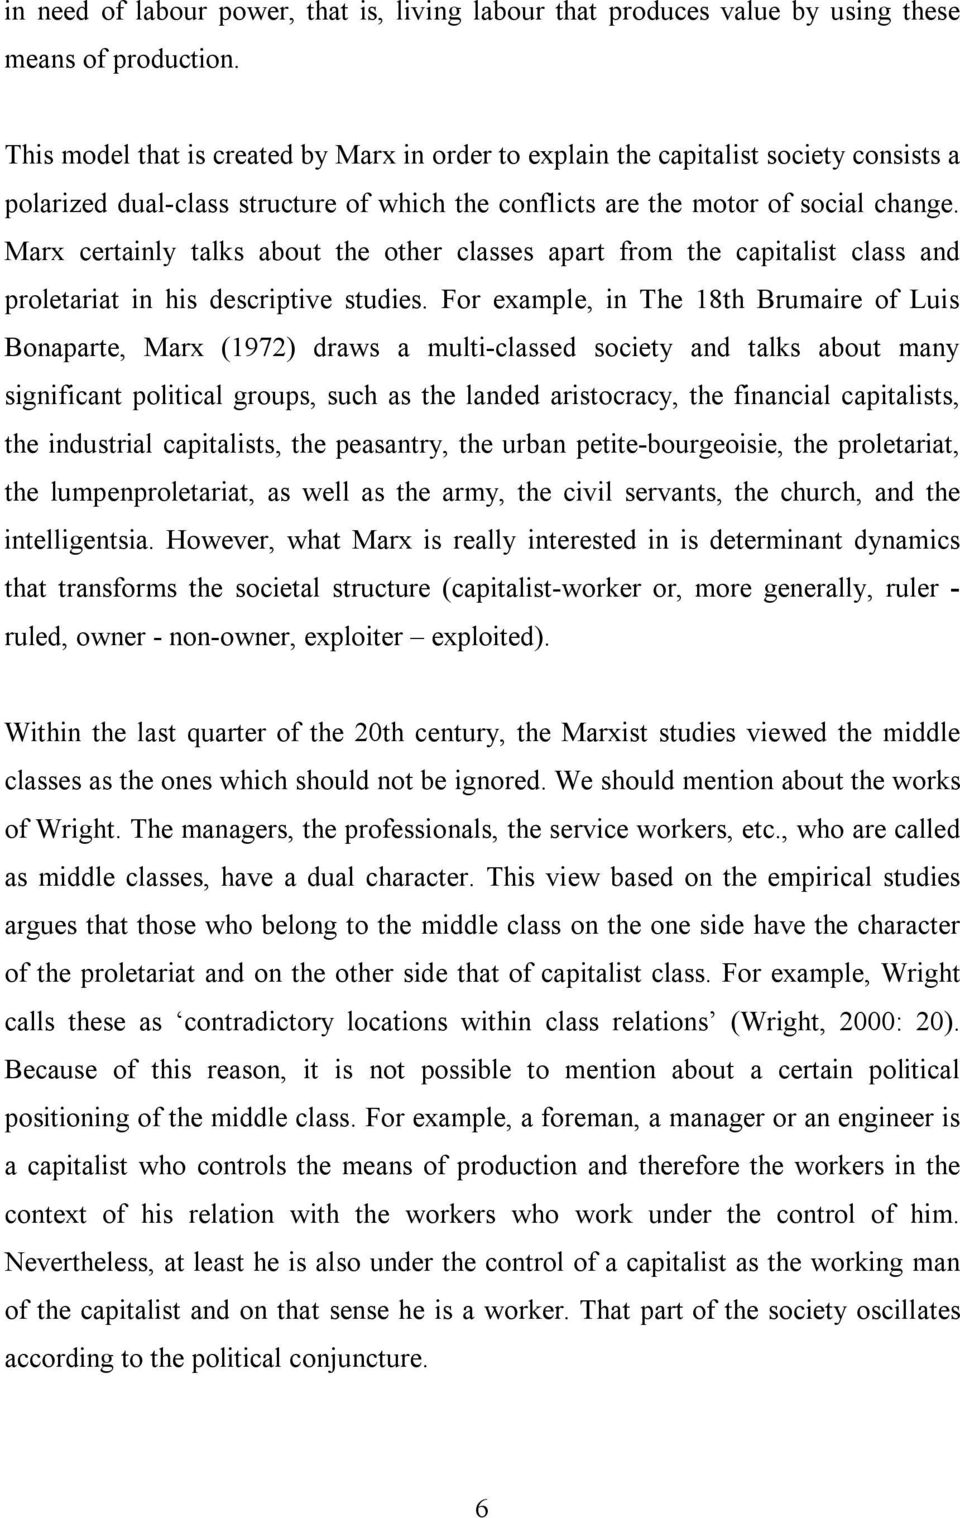 Marx certainly talks about the other classes apart from the capitalist class and proletariat in his descriptive studies.